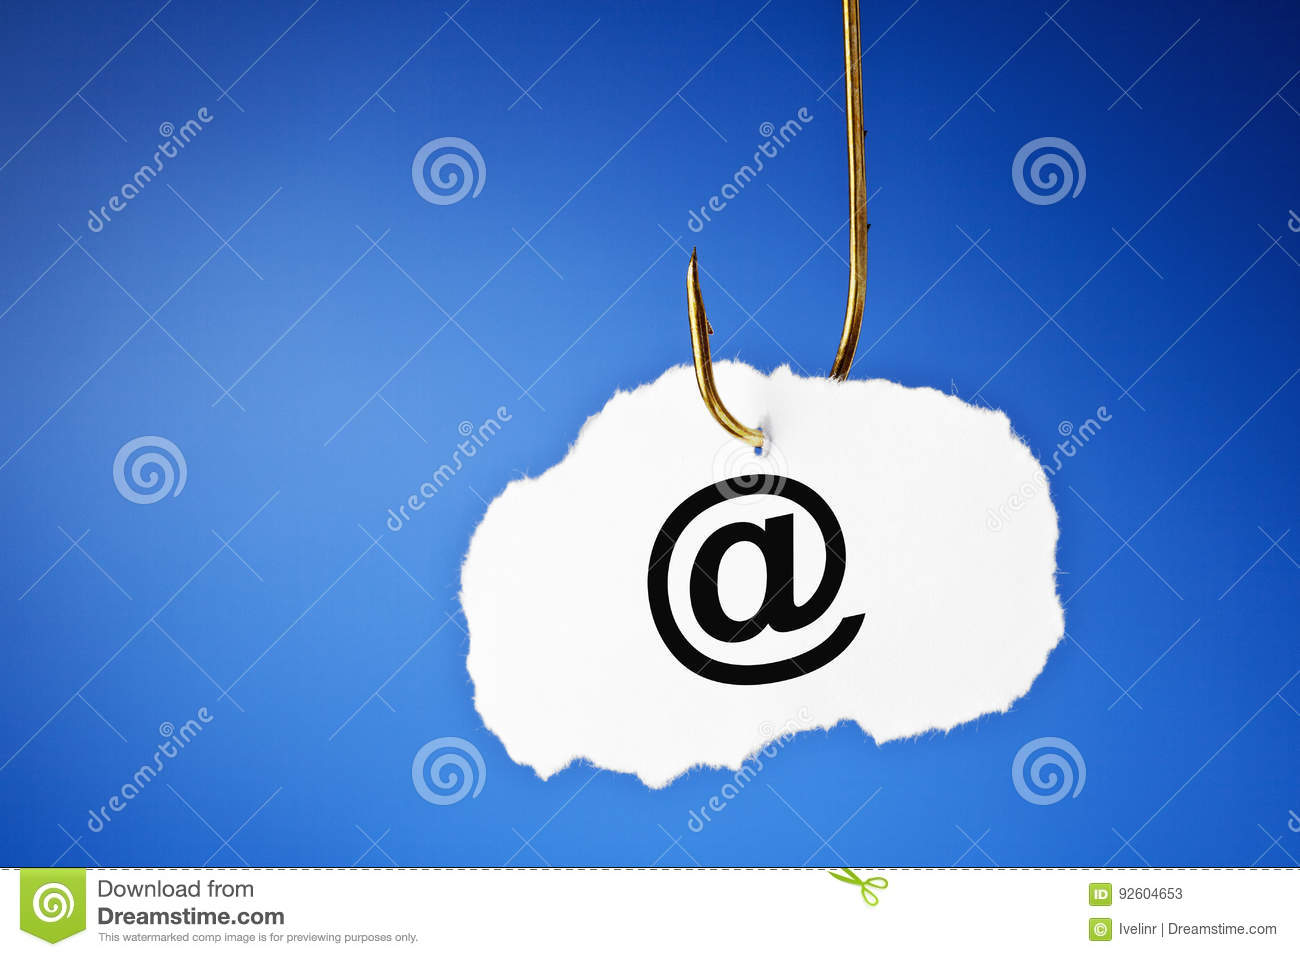 Concepto del email del phishing